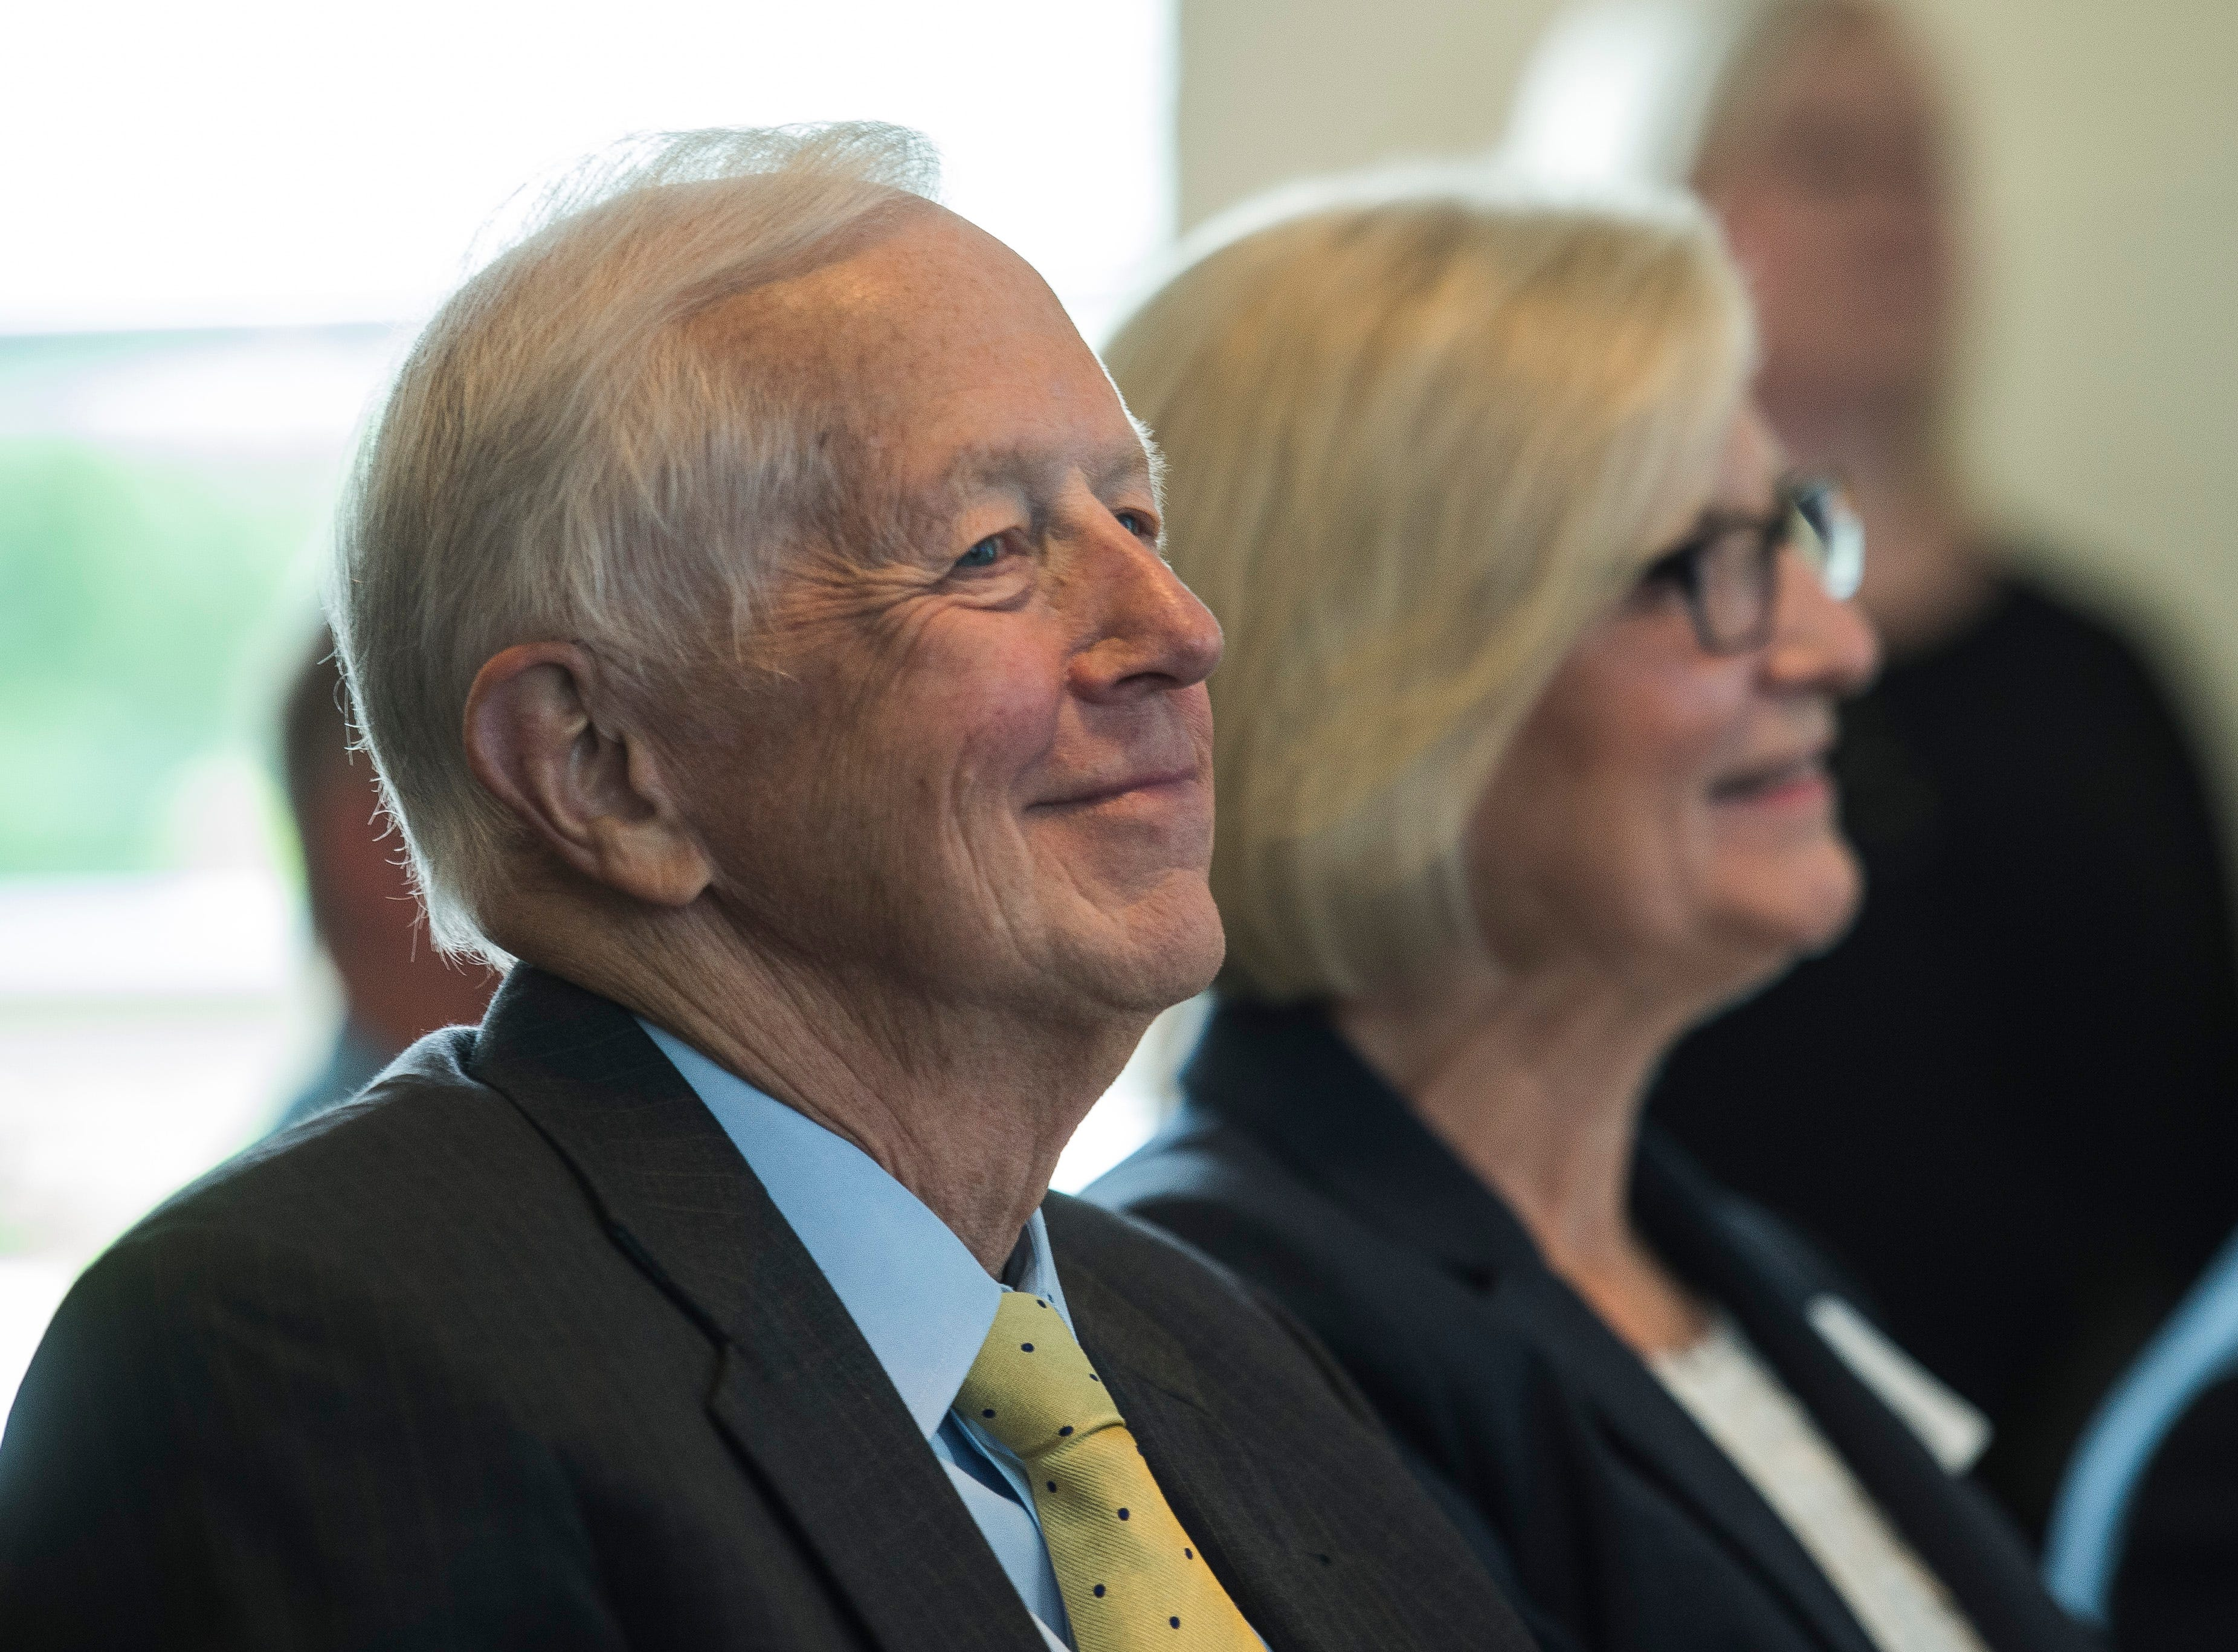 State Drug Czar Jim McClelland smiles during a news conference celebrating the opening of the Winchester House, a new drug treatment facility for women, in Winchester, Ind., on Wednesday, Aug. 1, 2018.